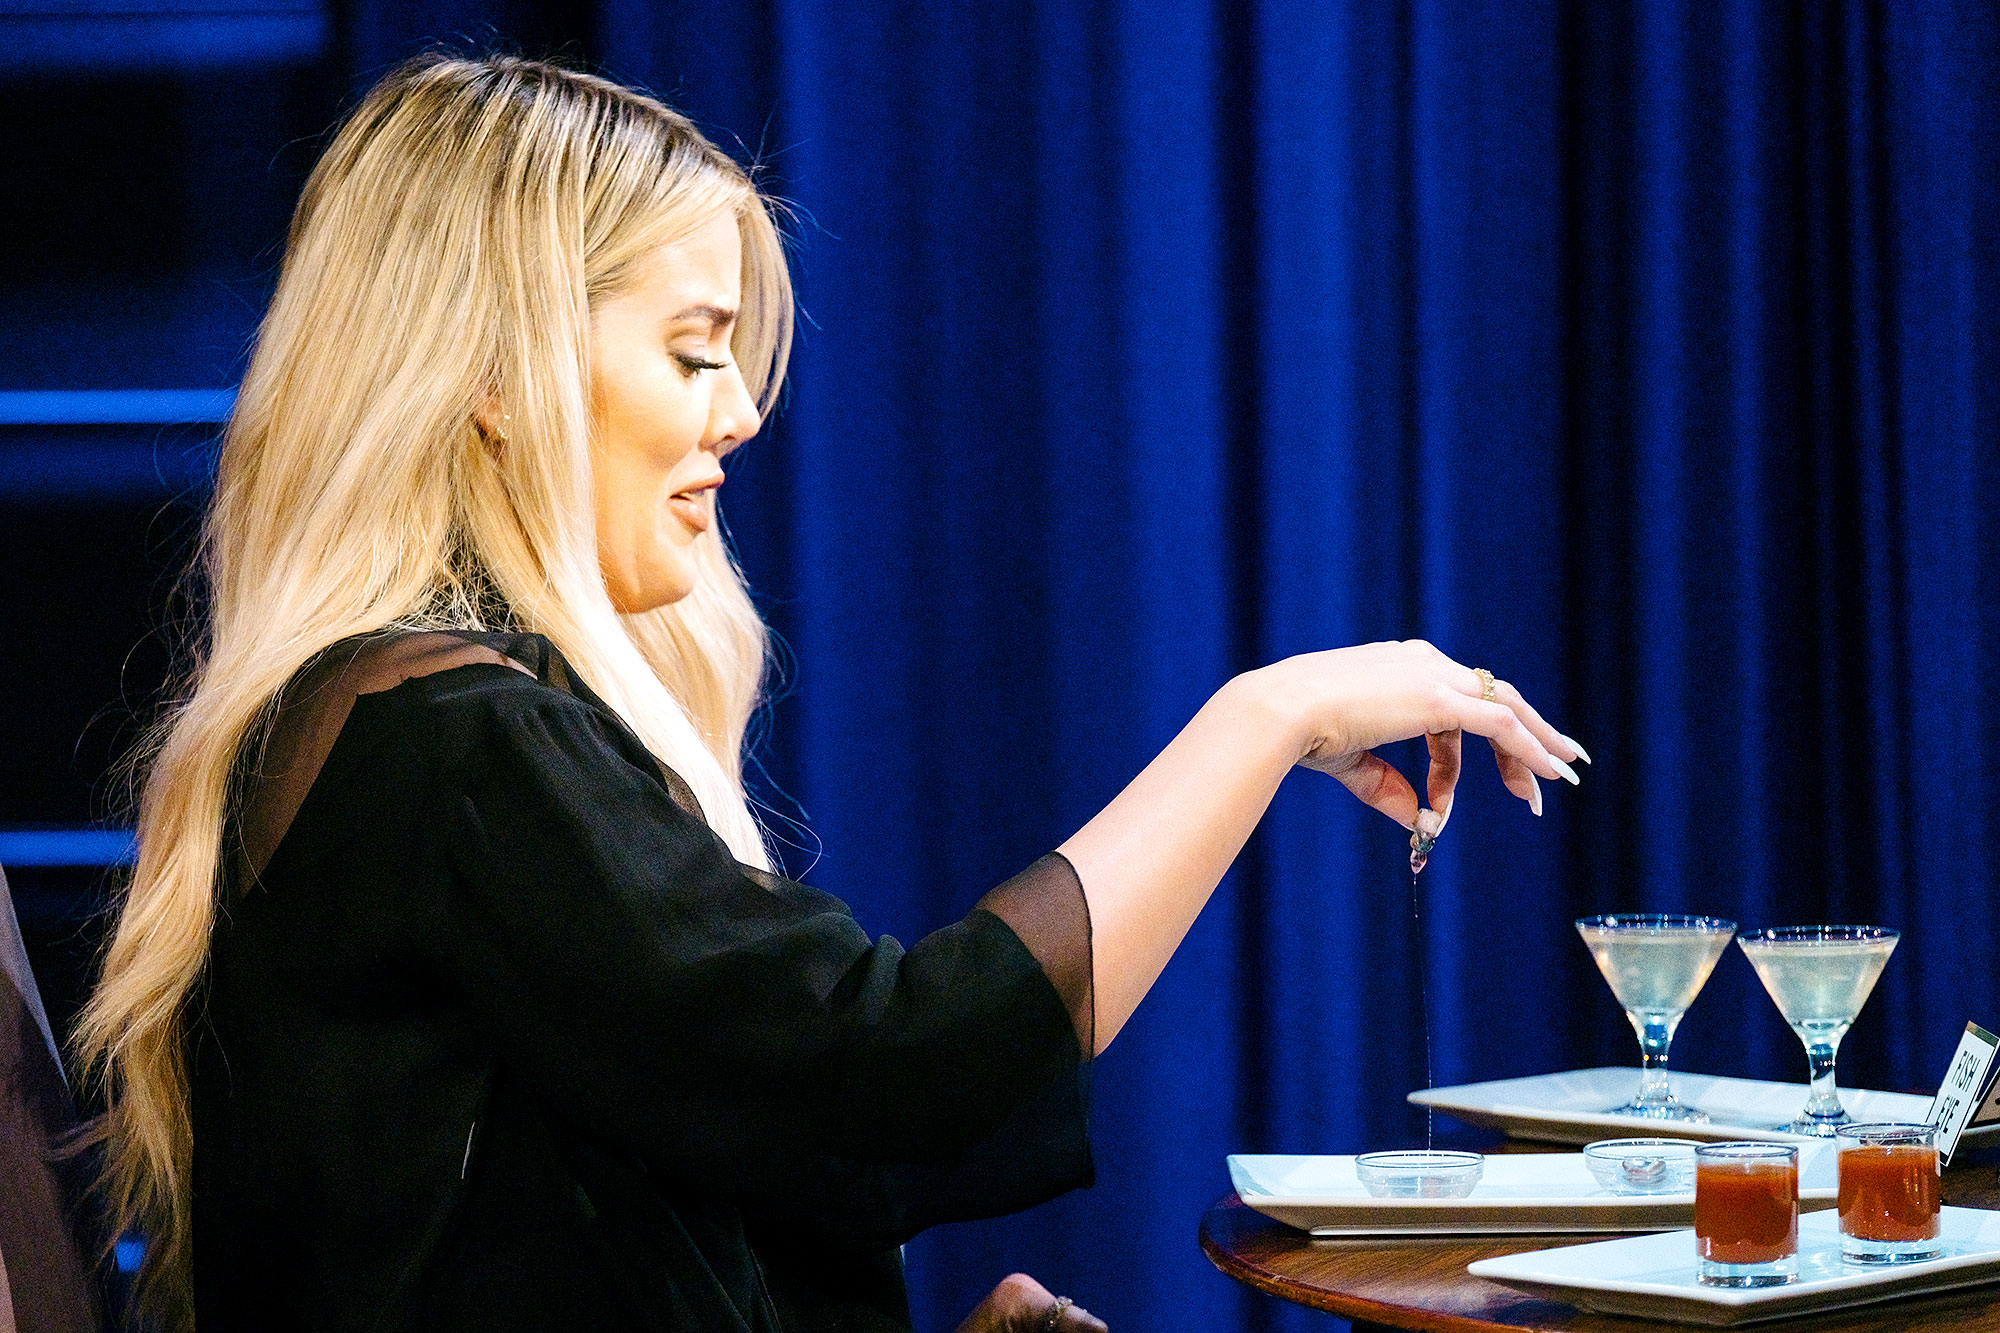 Khloe Kardashian plays Spill Your Guts or Fill Your Guts with James Corden during